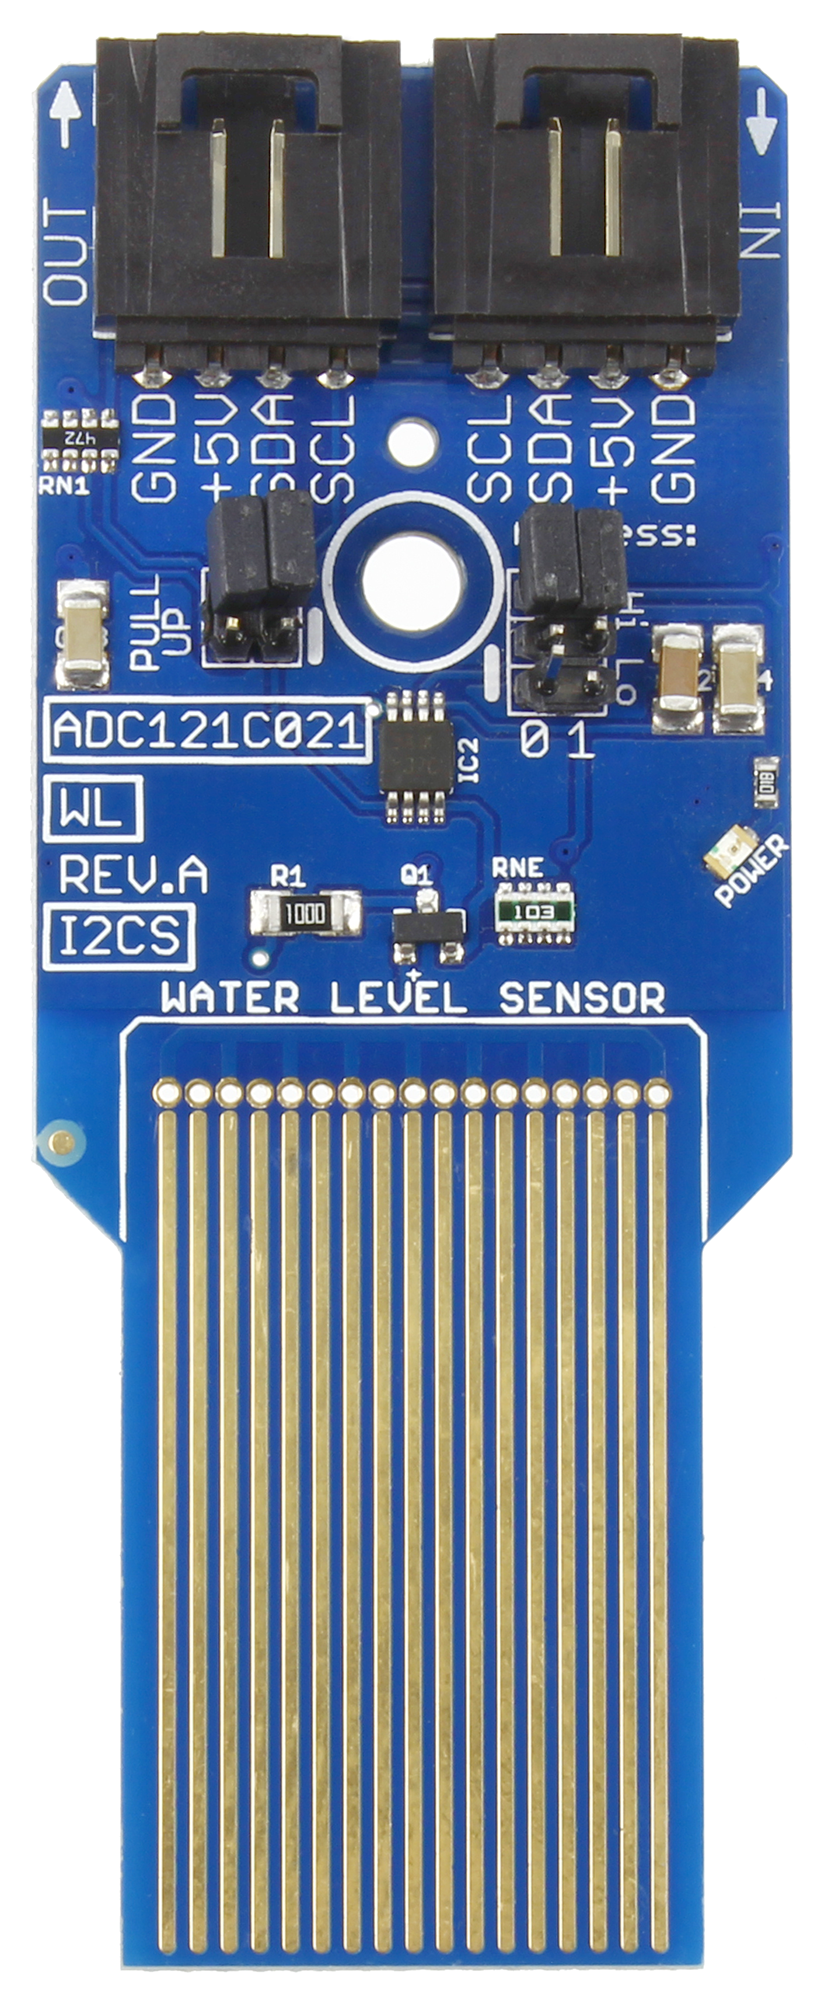 Water Level Sensor with Analog to Digital Converter ADC121C021 -  store ncd io